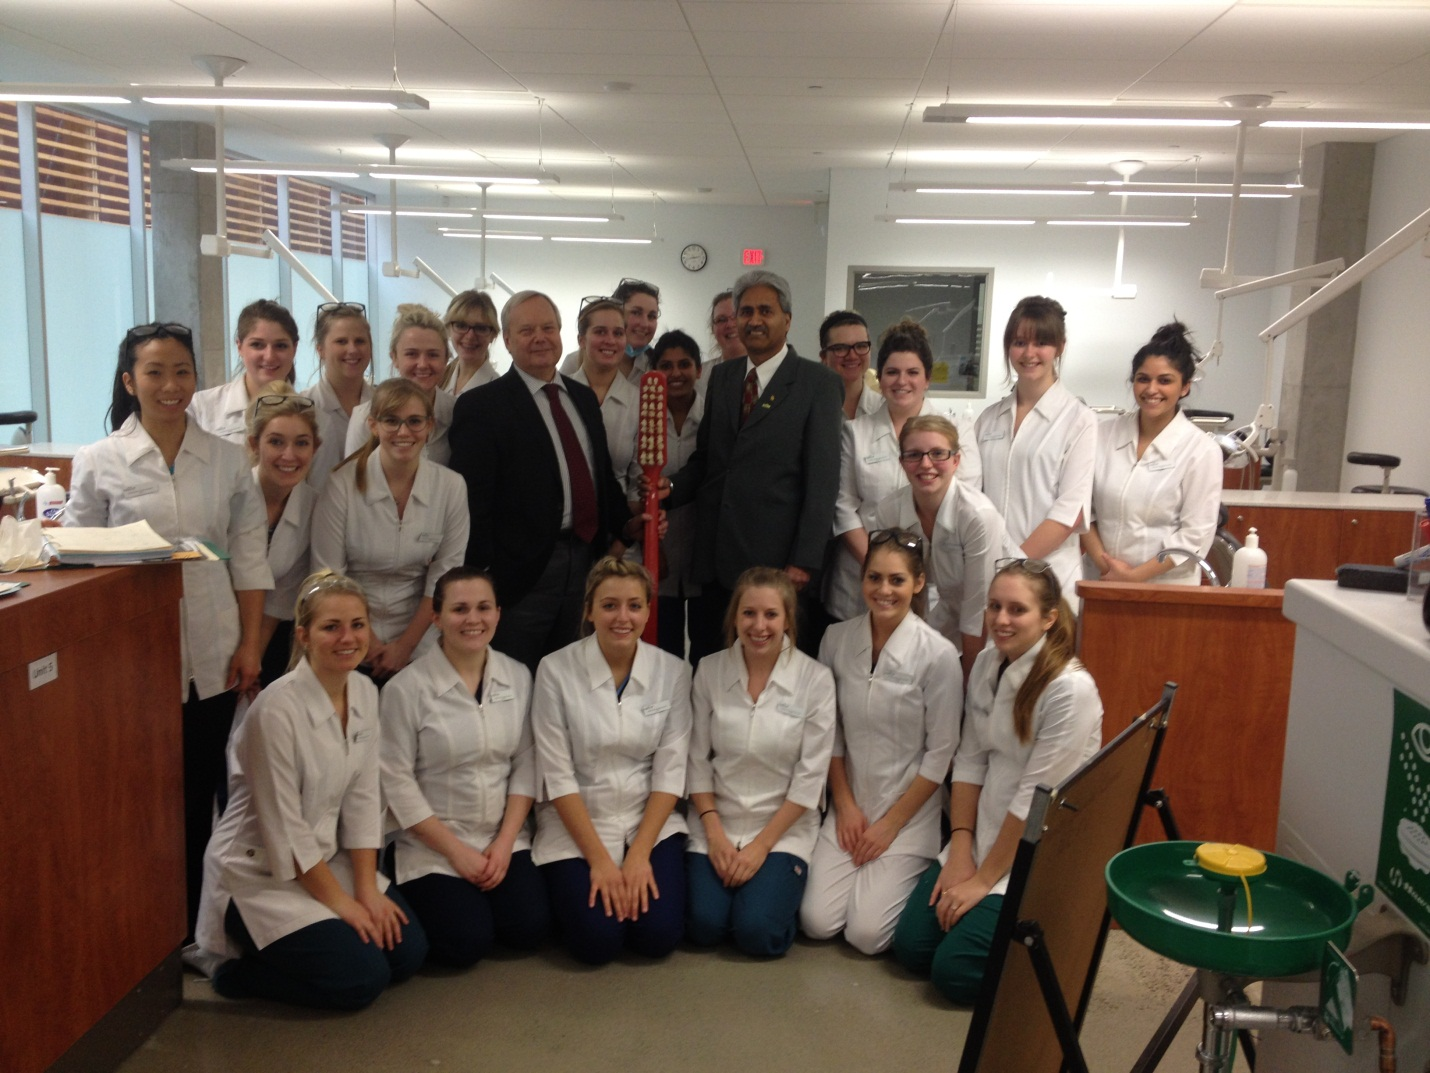 Dr Dhami, Dr. Evered and Dental Assisting students